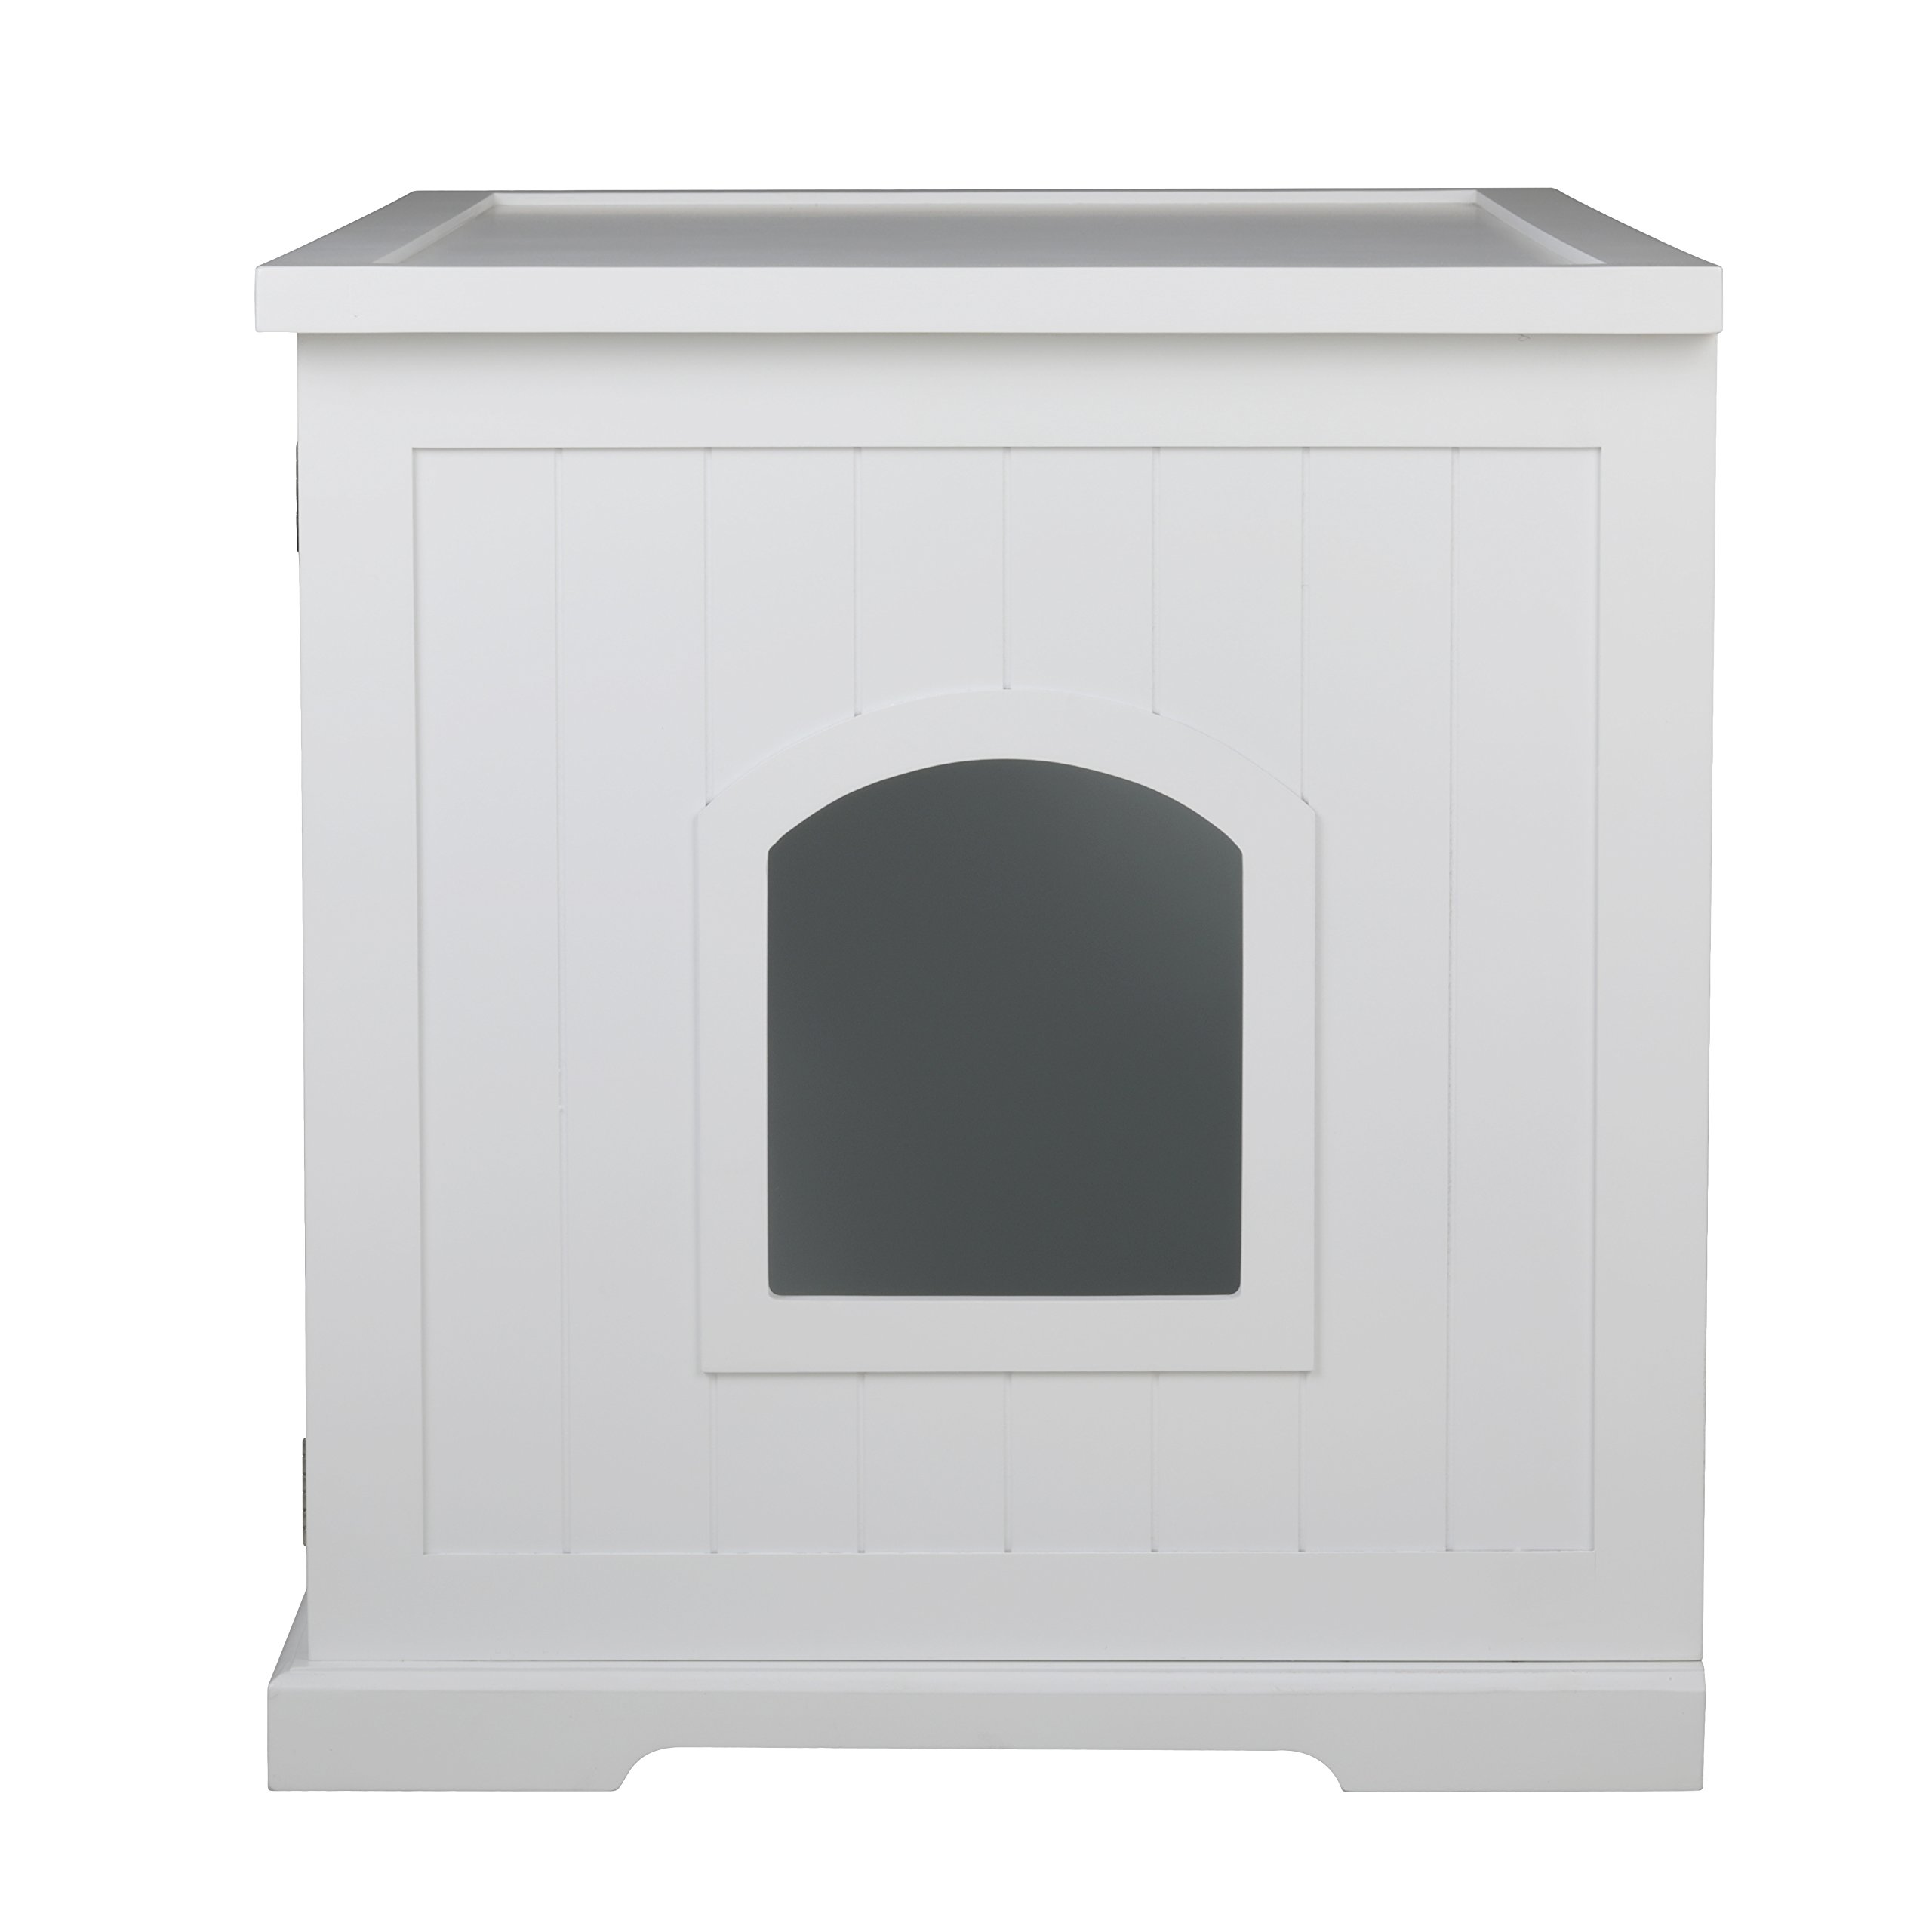 Merry Products Cat Washroom Bench, White by Merry (Image #8)